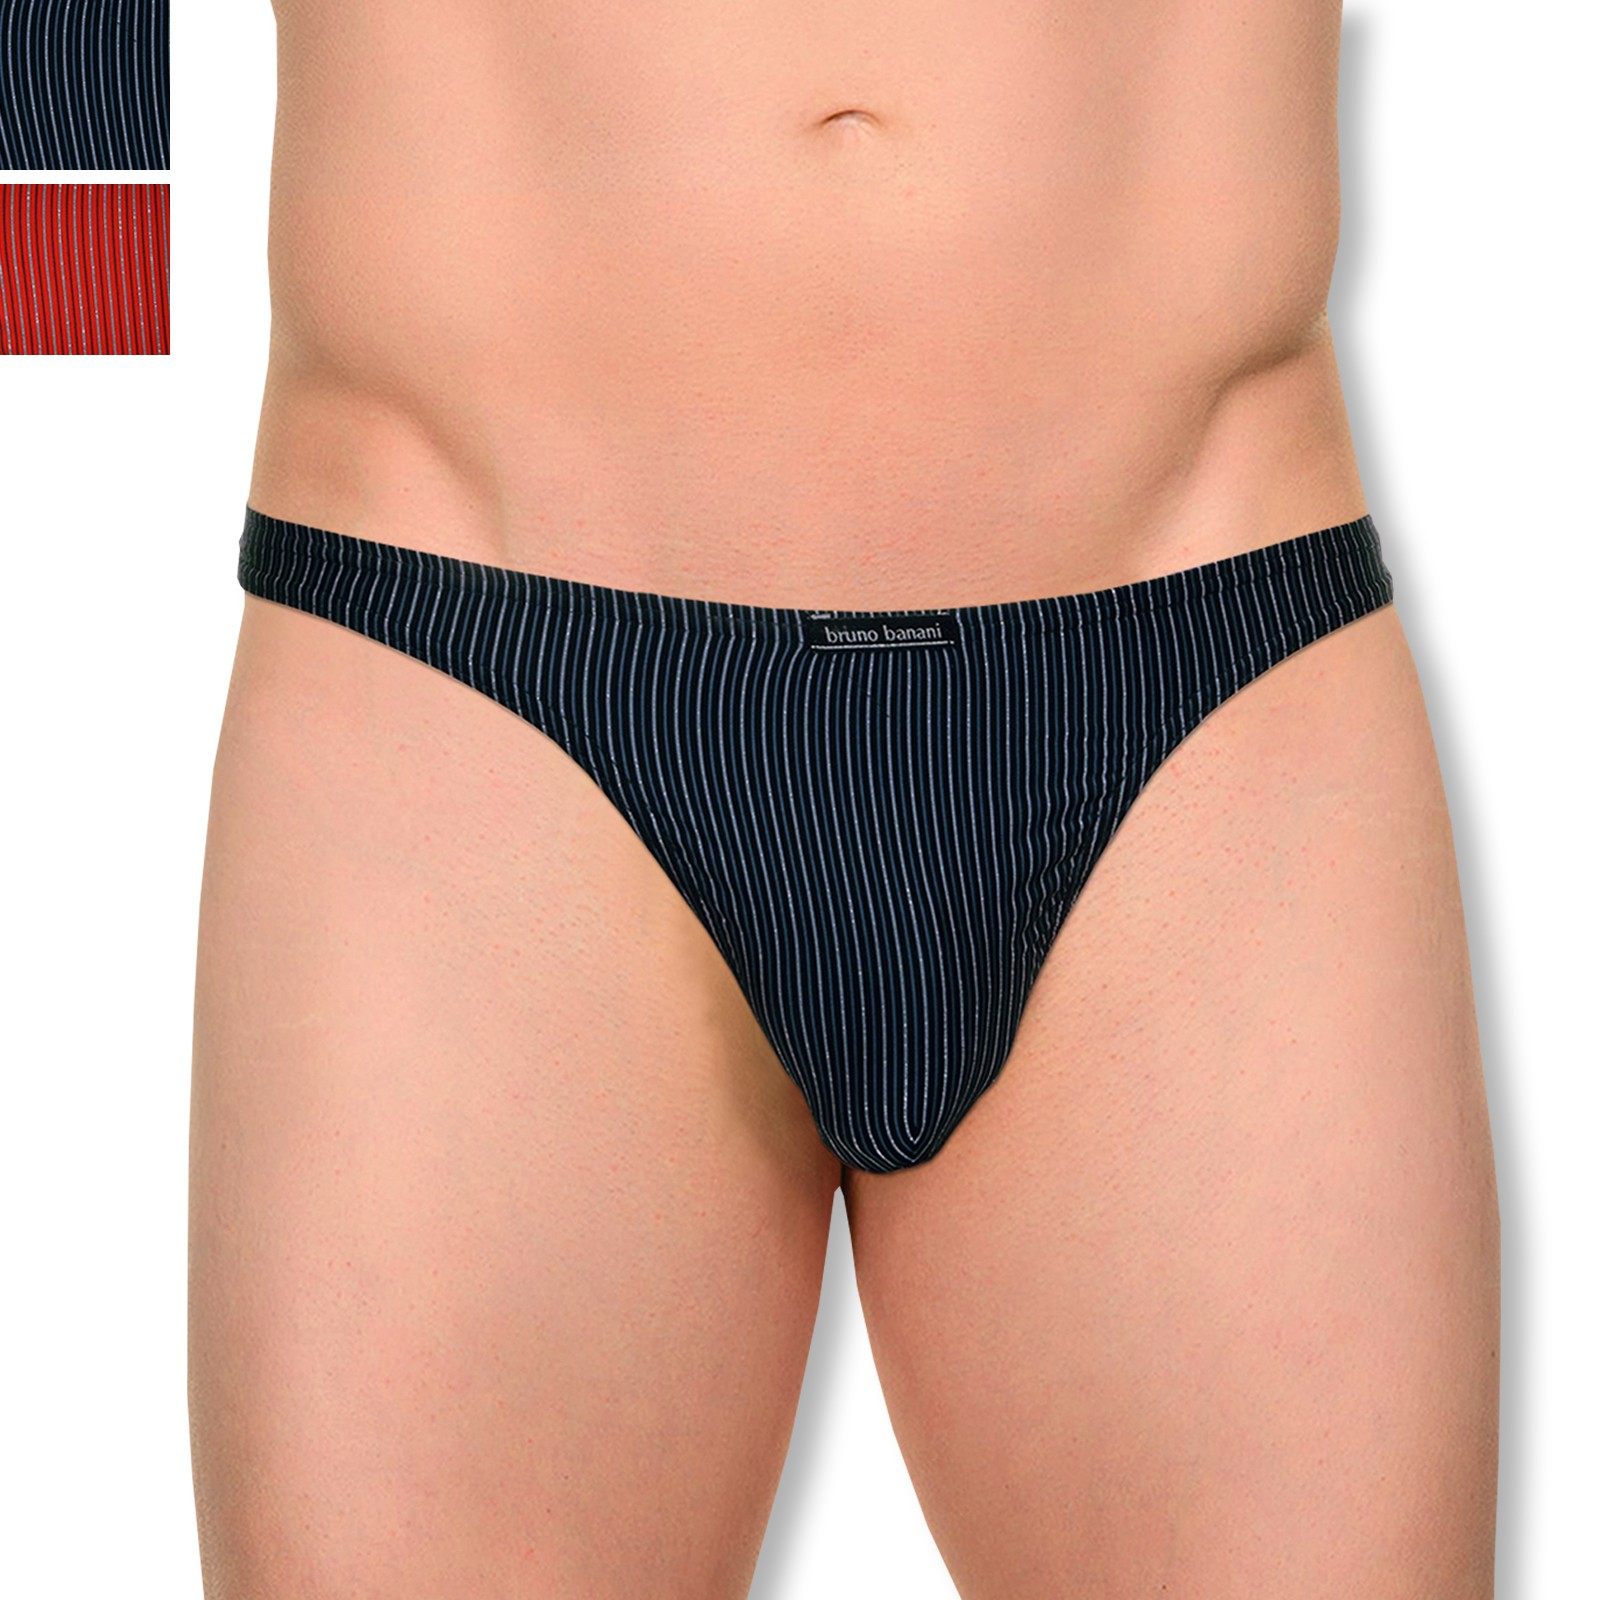 bruno banani String Tanga Kingdom M L XL in schwarz stripes